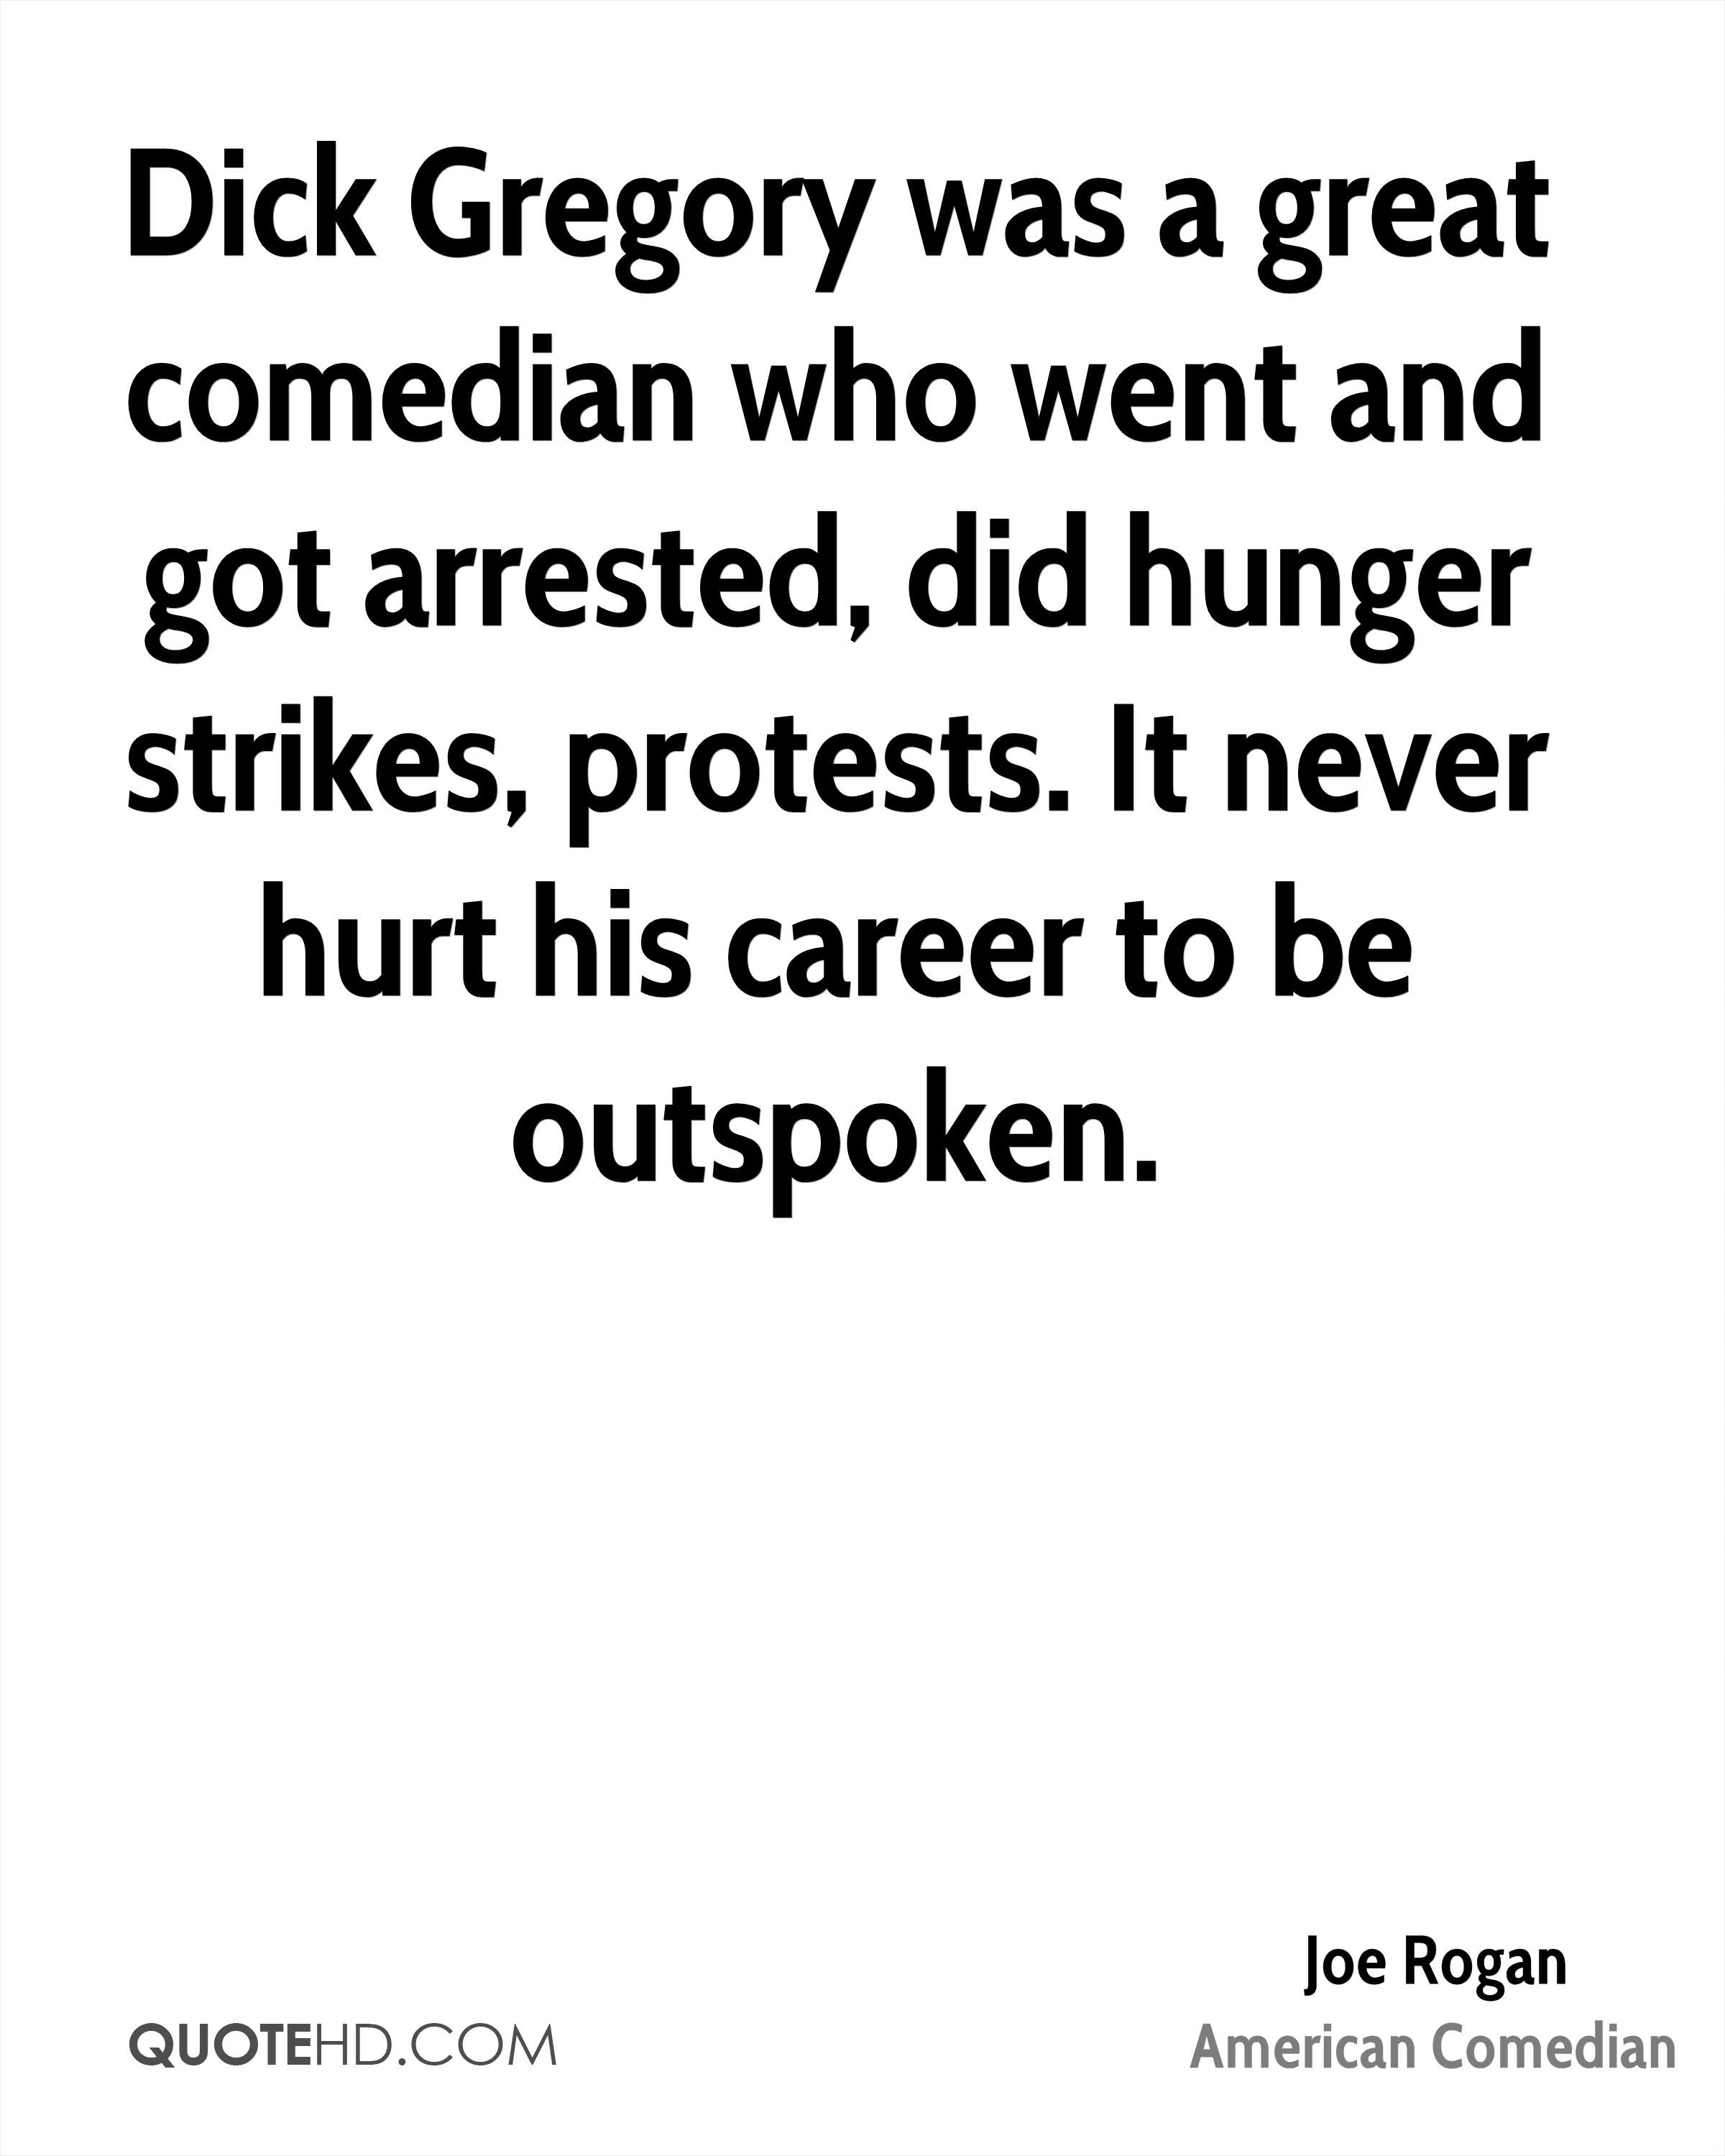 Dick Gregory was a great comedian who went and got arrested, did hunger strikes, protests. It never hurt his career to be outspoken.